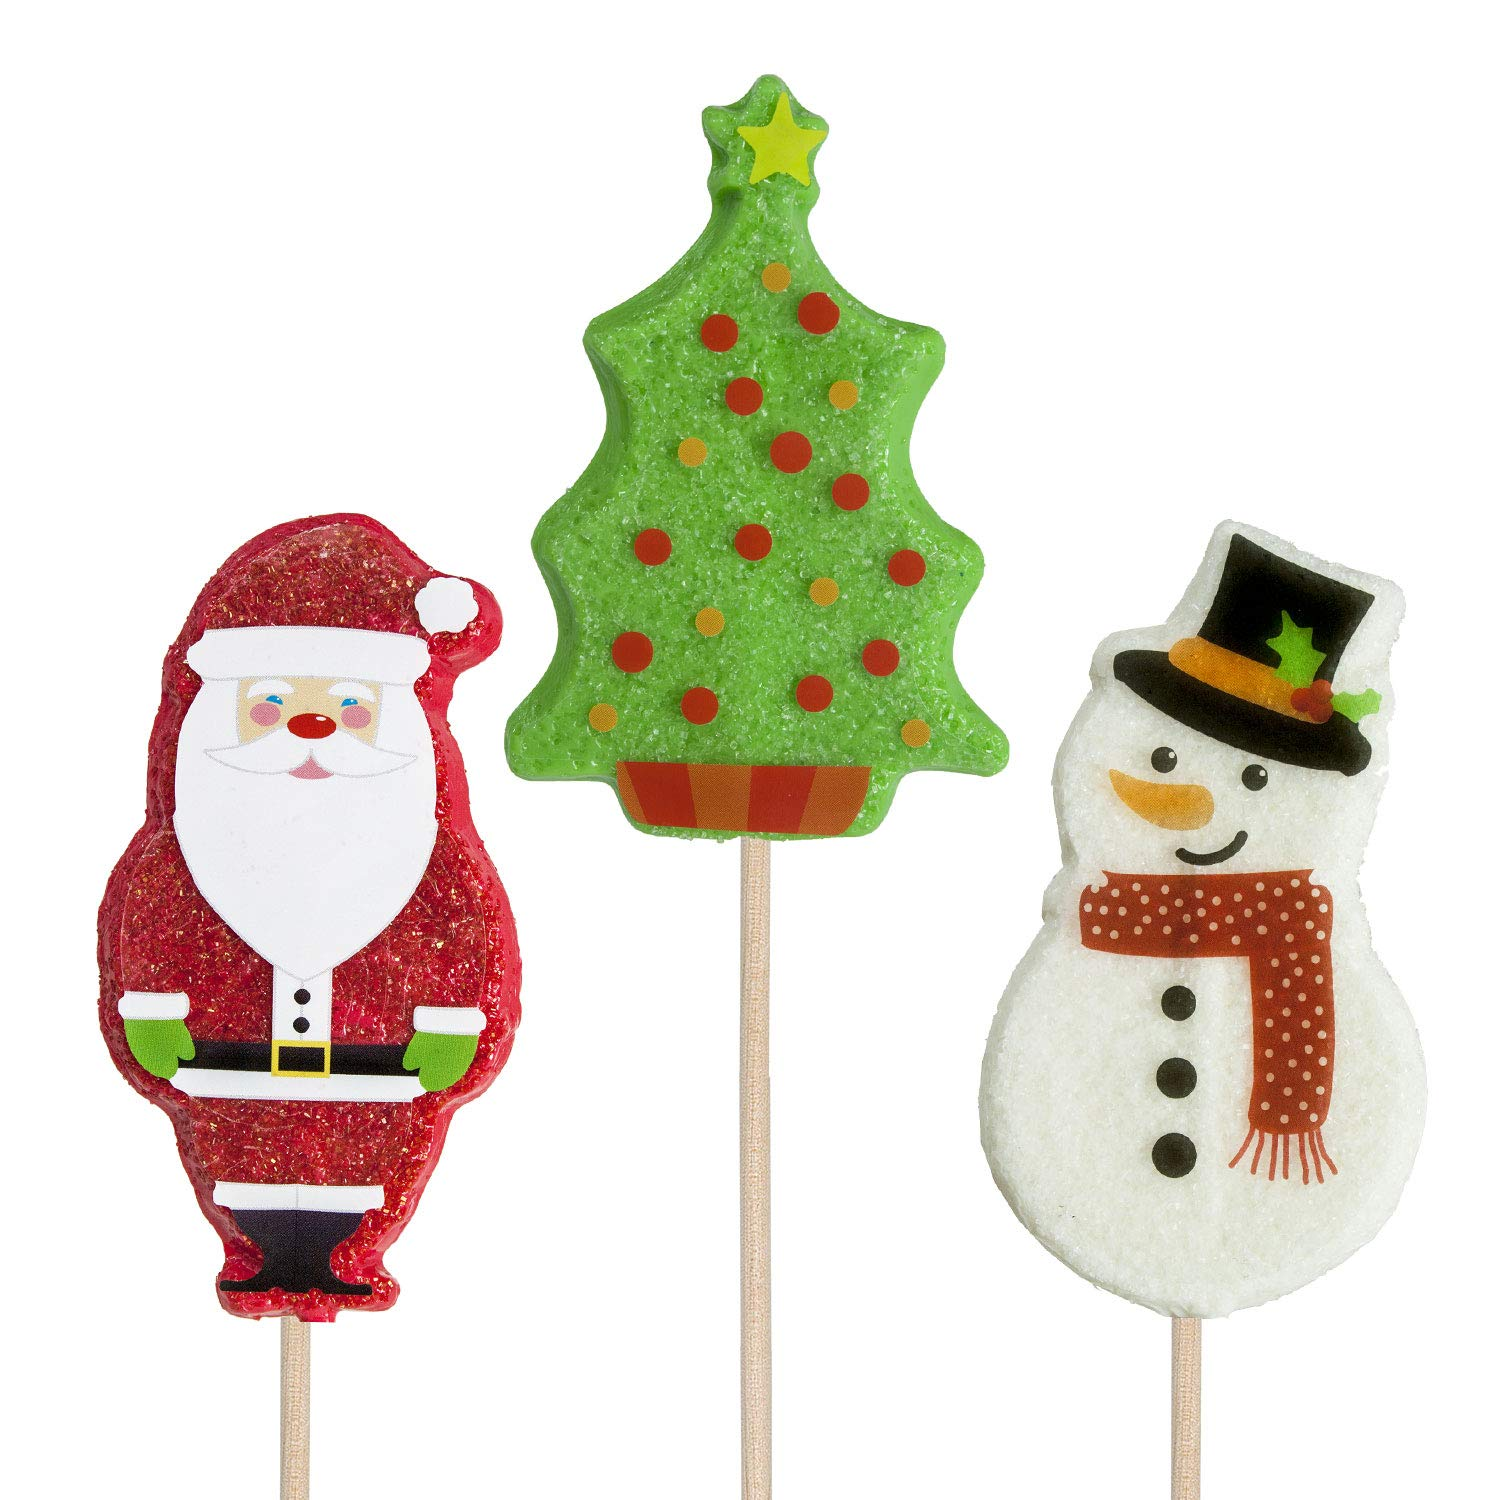 Sweet Holiday Hard Candy Lollipop Assortment Santa Snowman Tree (24 ct) by Melville Candy